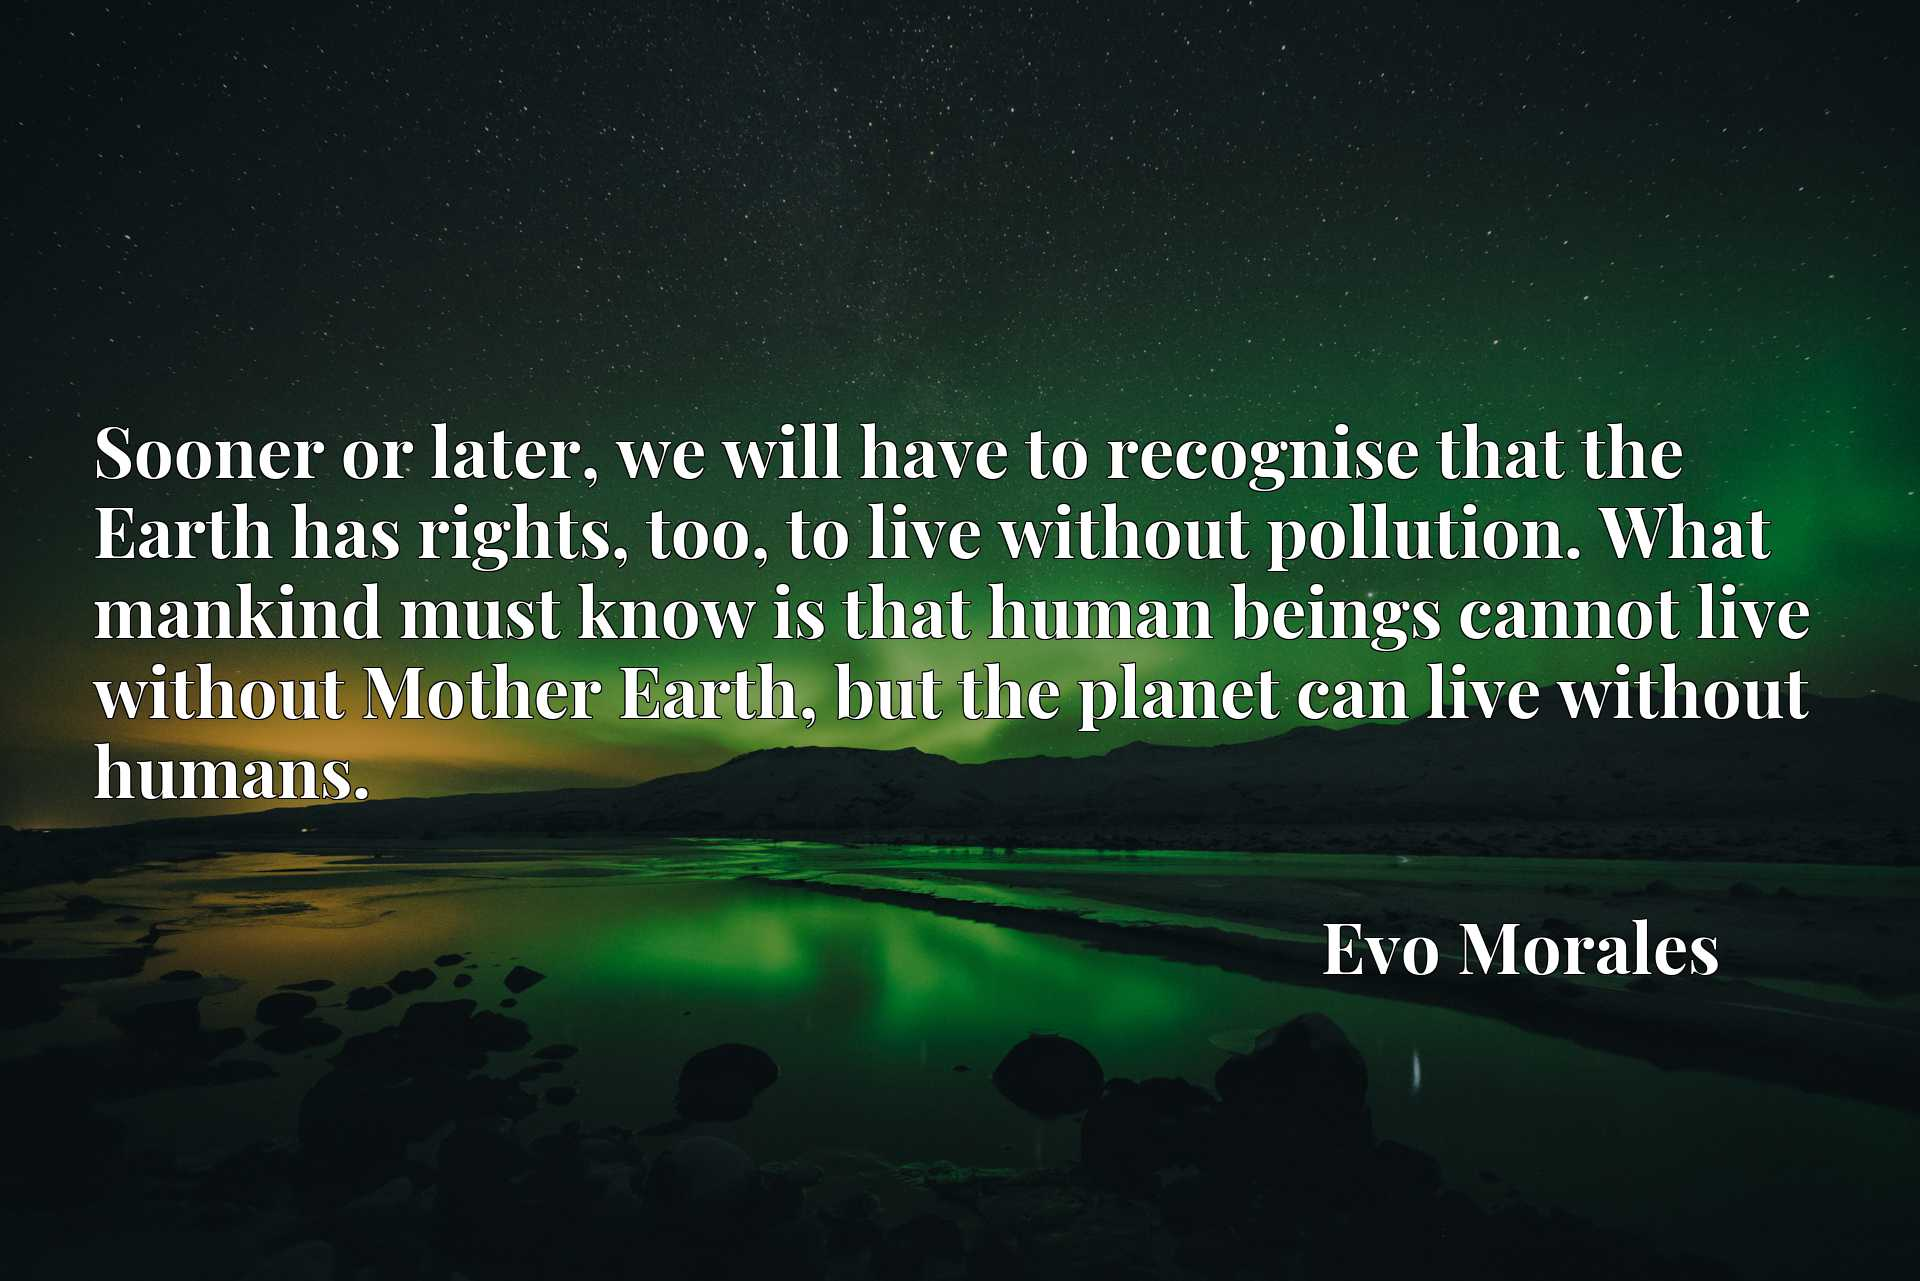 Sooner or later, we will have to recognise that the Earth has rights, too, to live without pollution. What mankind must know is that human beings cannot live without Mother Earth, but the planet can live without humans.